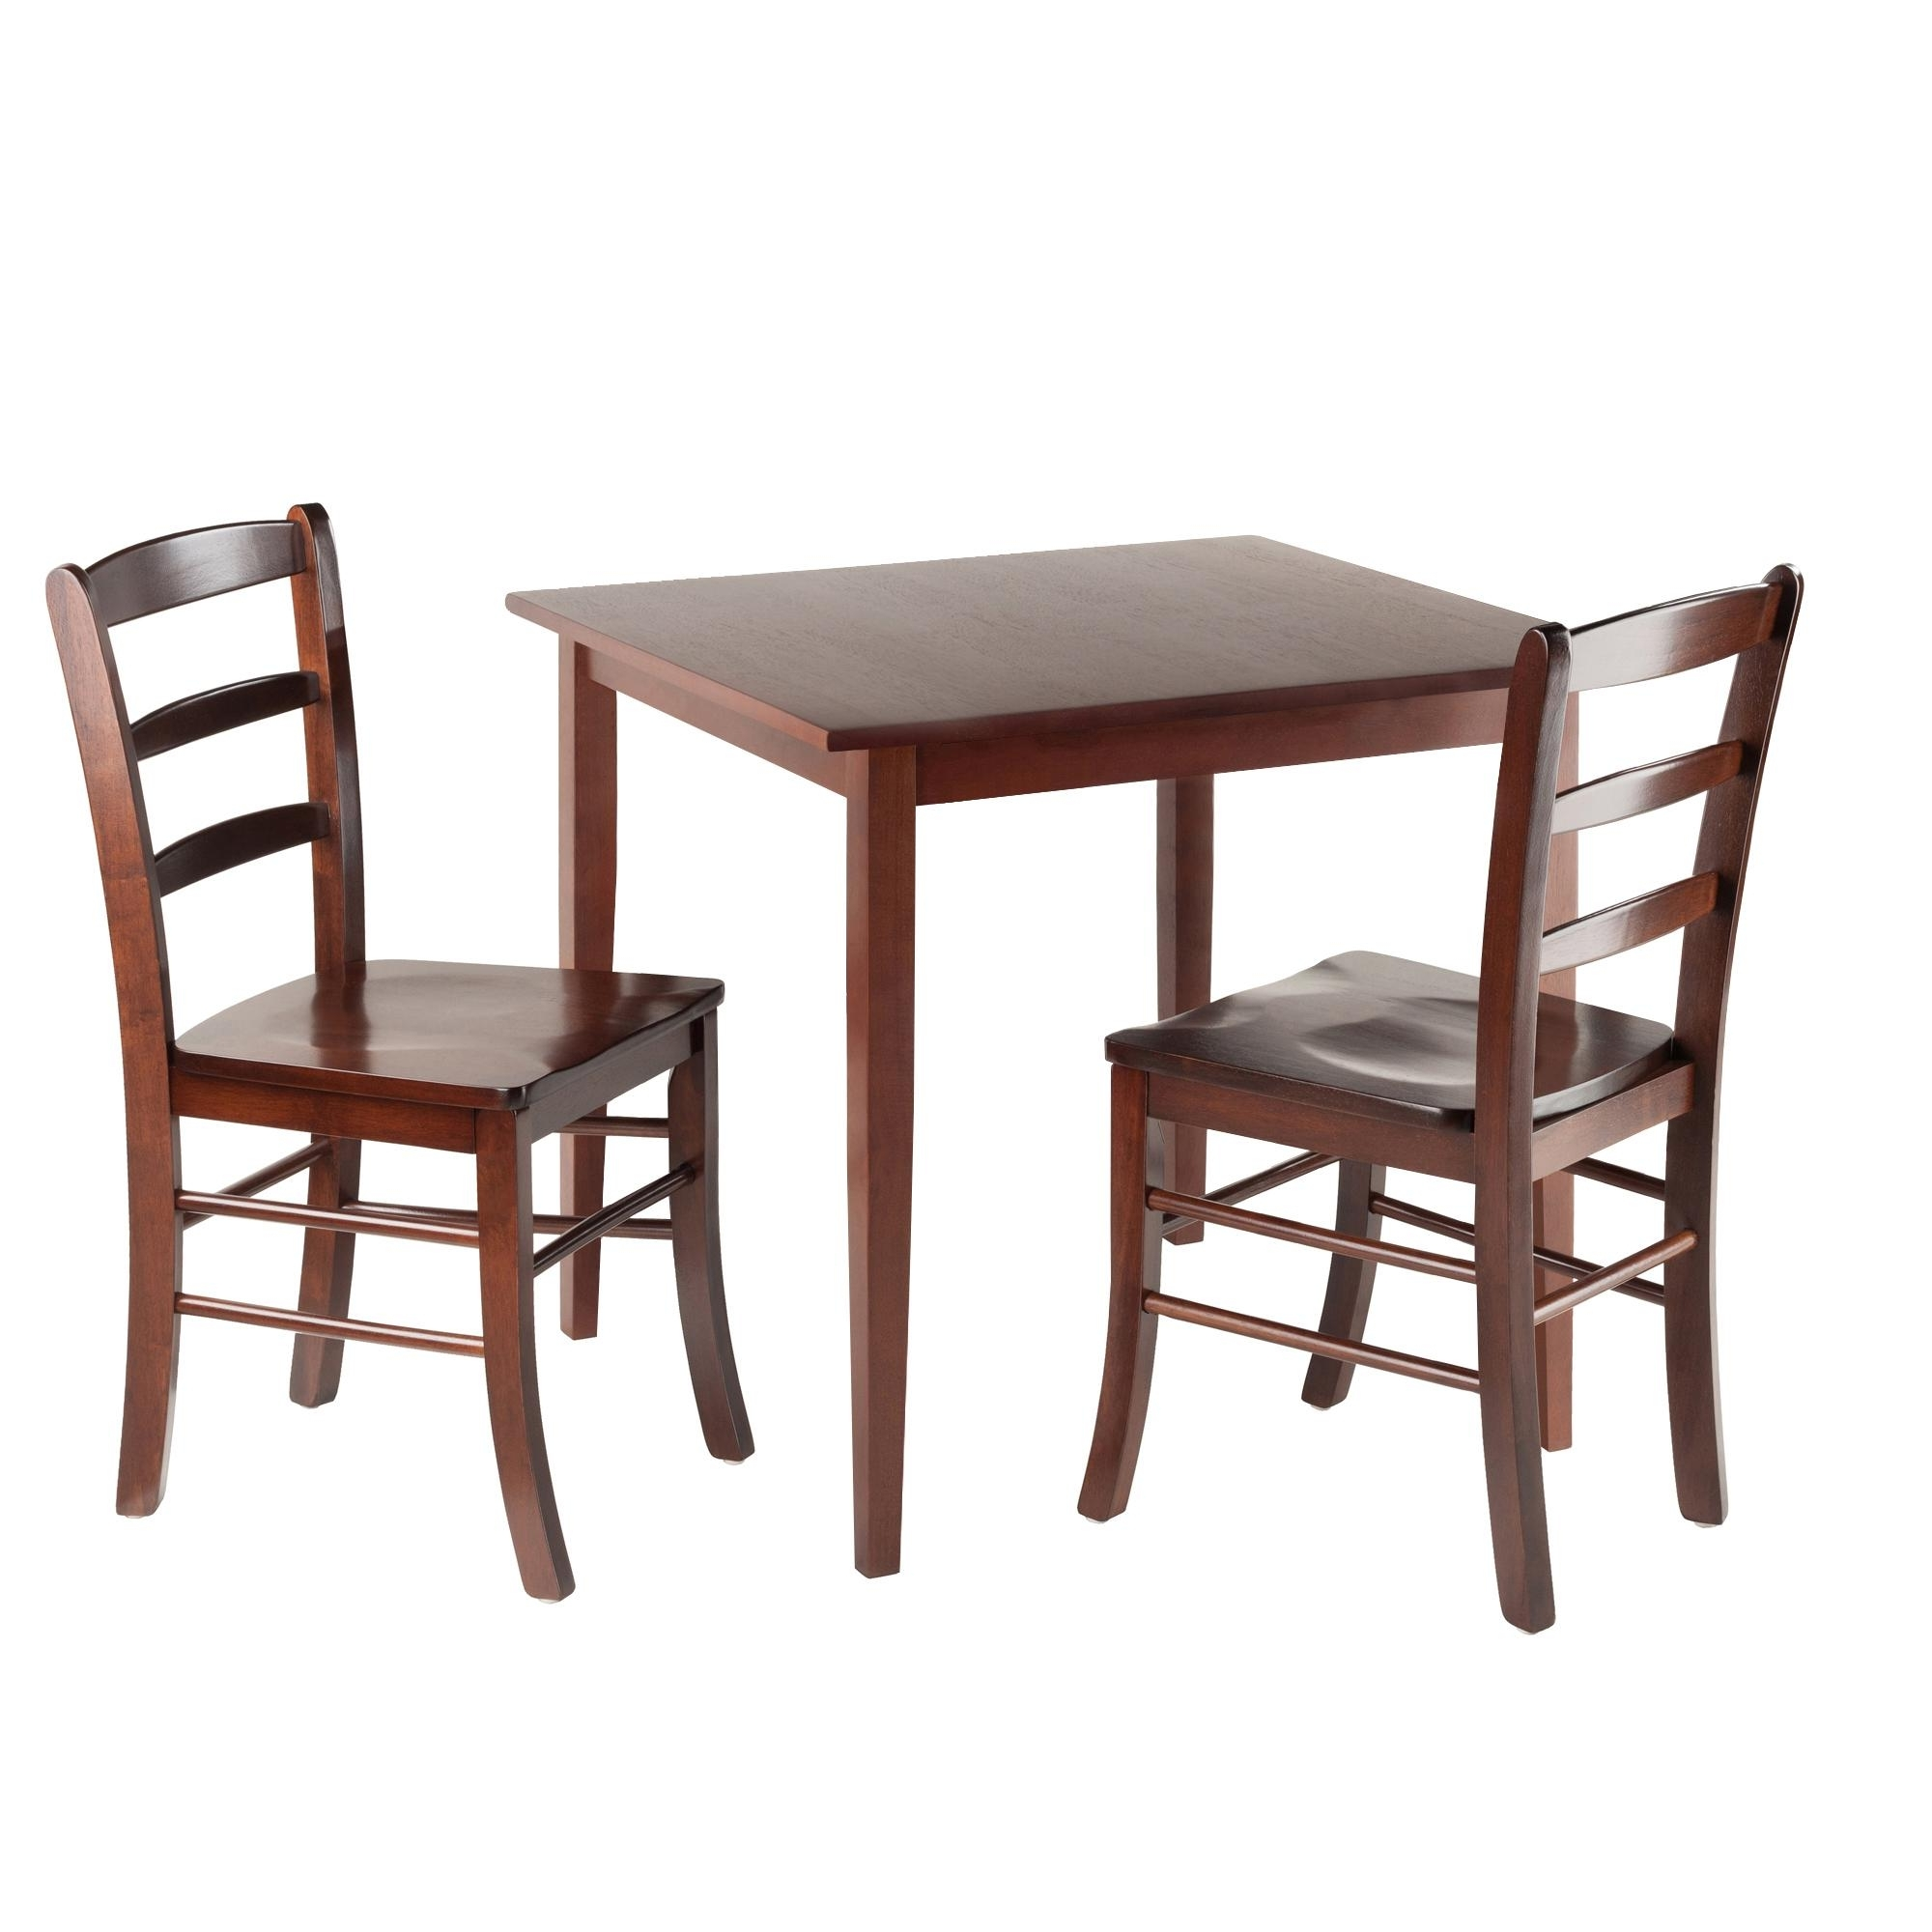 Newest Oak Dining Tables Sets Throughout Amazon – Winsome Groveland Square Dining Table With 2 Chairs, (View 9 of 25)